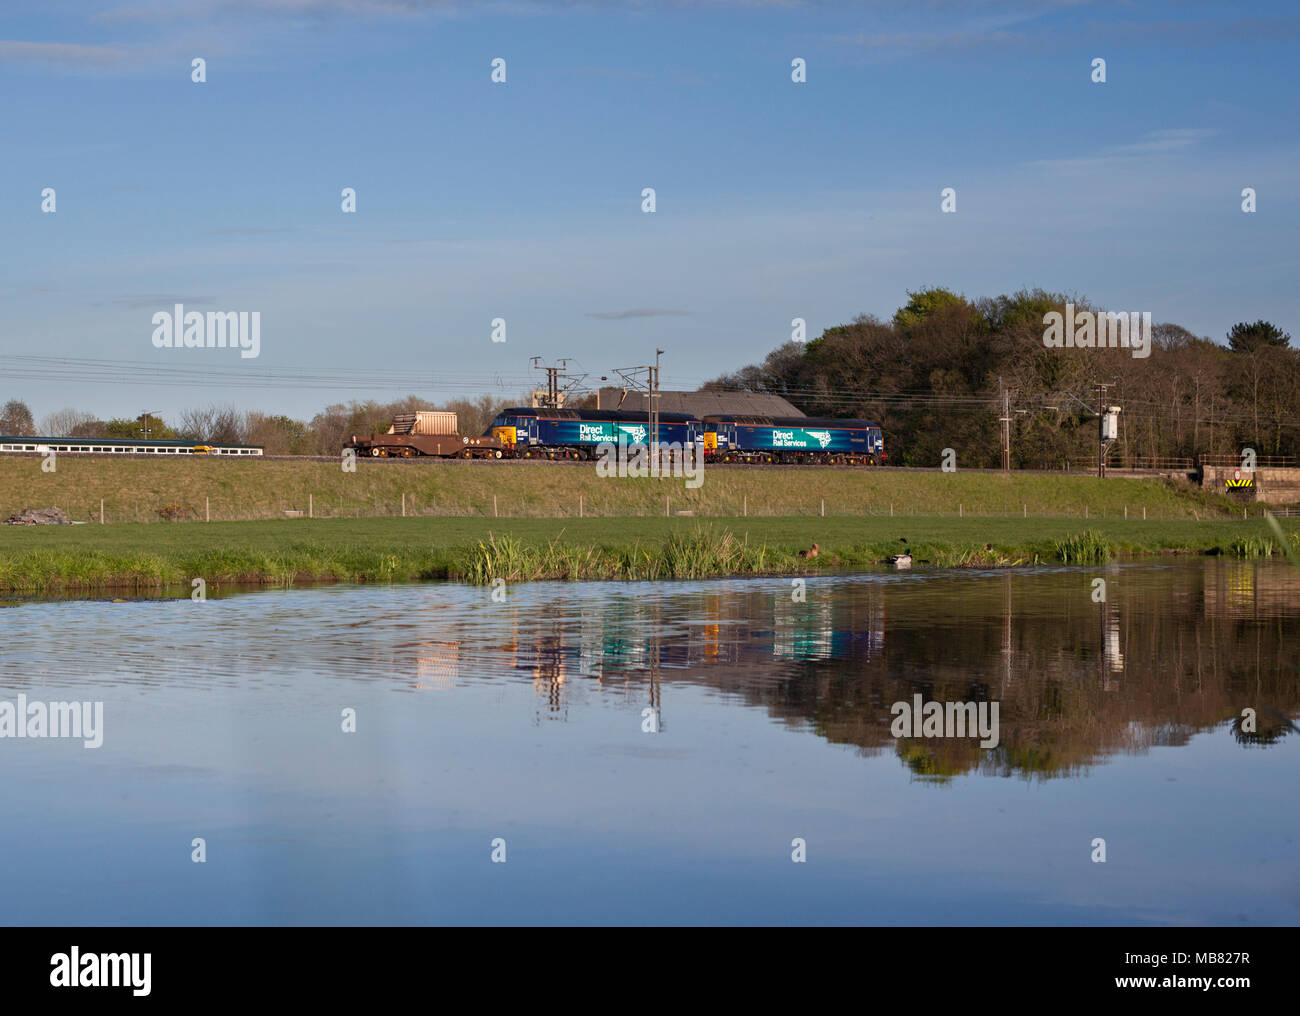 2 Direct rail Services class 57 locomotives on the west coast main line alongside a canal with the a nuclear flask - Stock Image